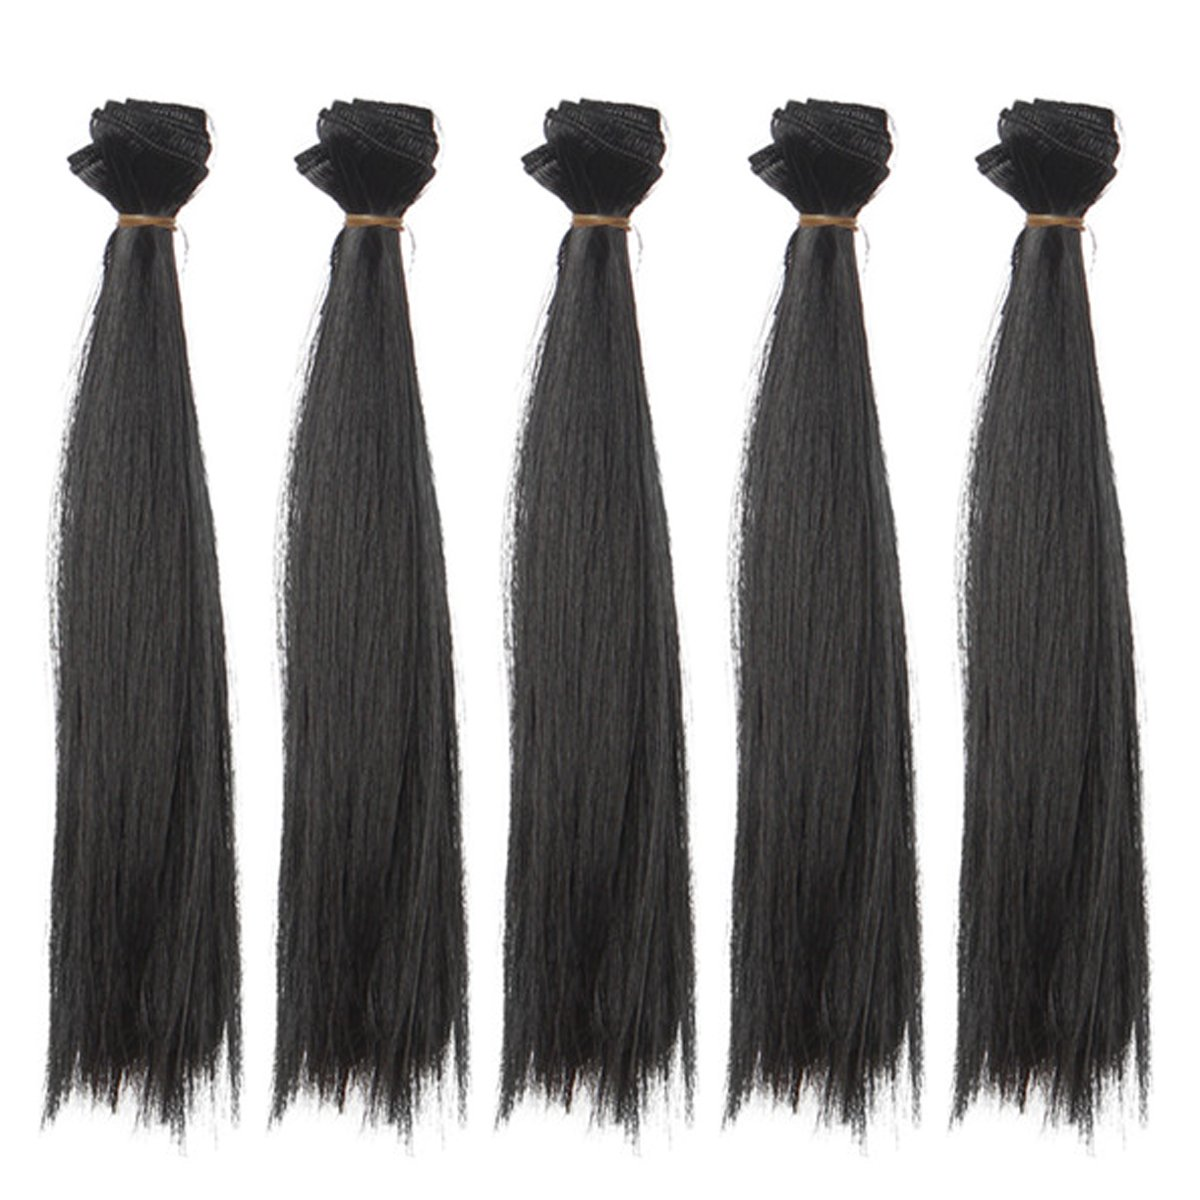 25x100cm Gorgeous Straight Solid White Heat Resistant Hair Extensions Handcraft Materials 5pcs/lot Leeswig